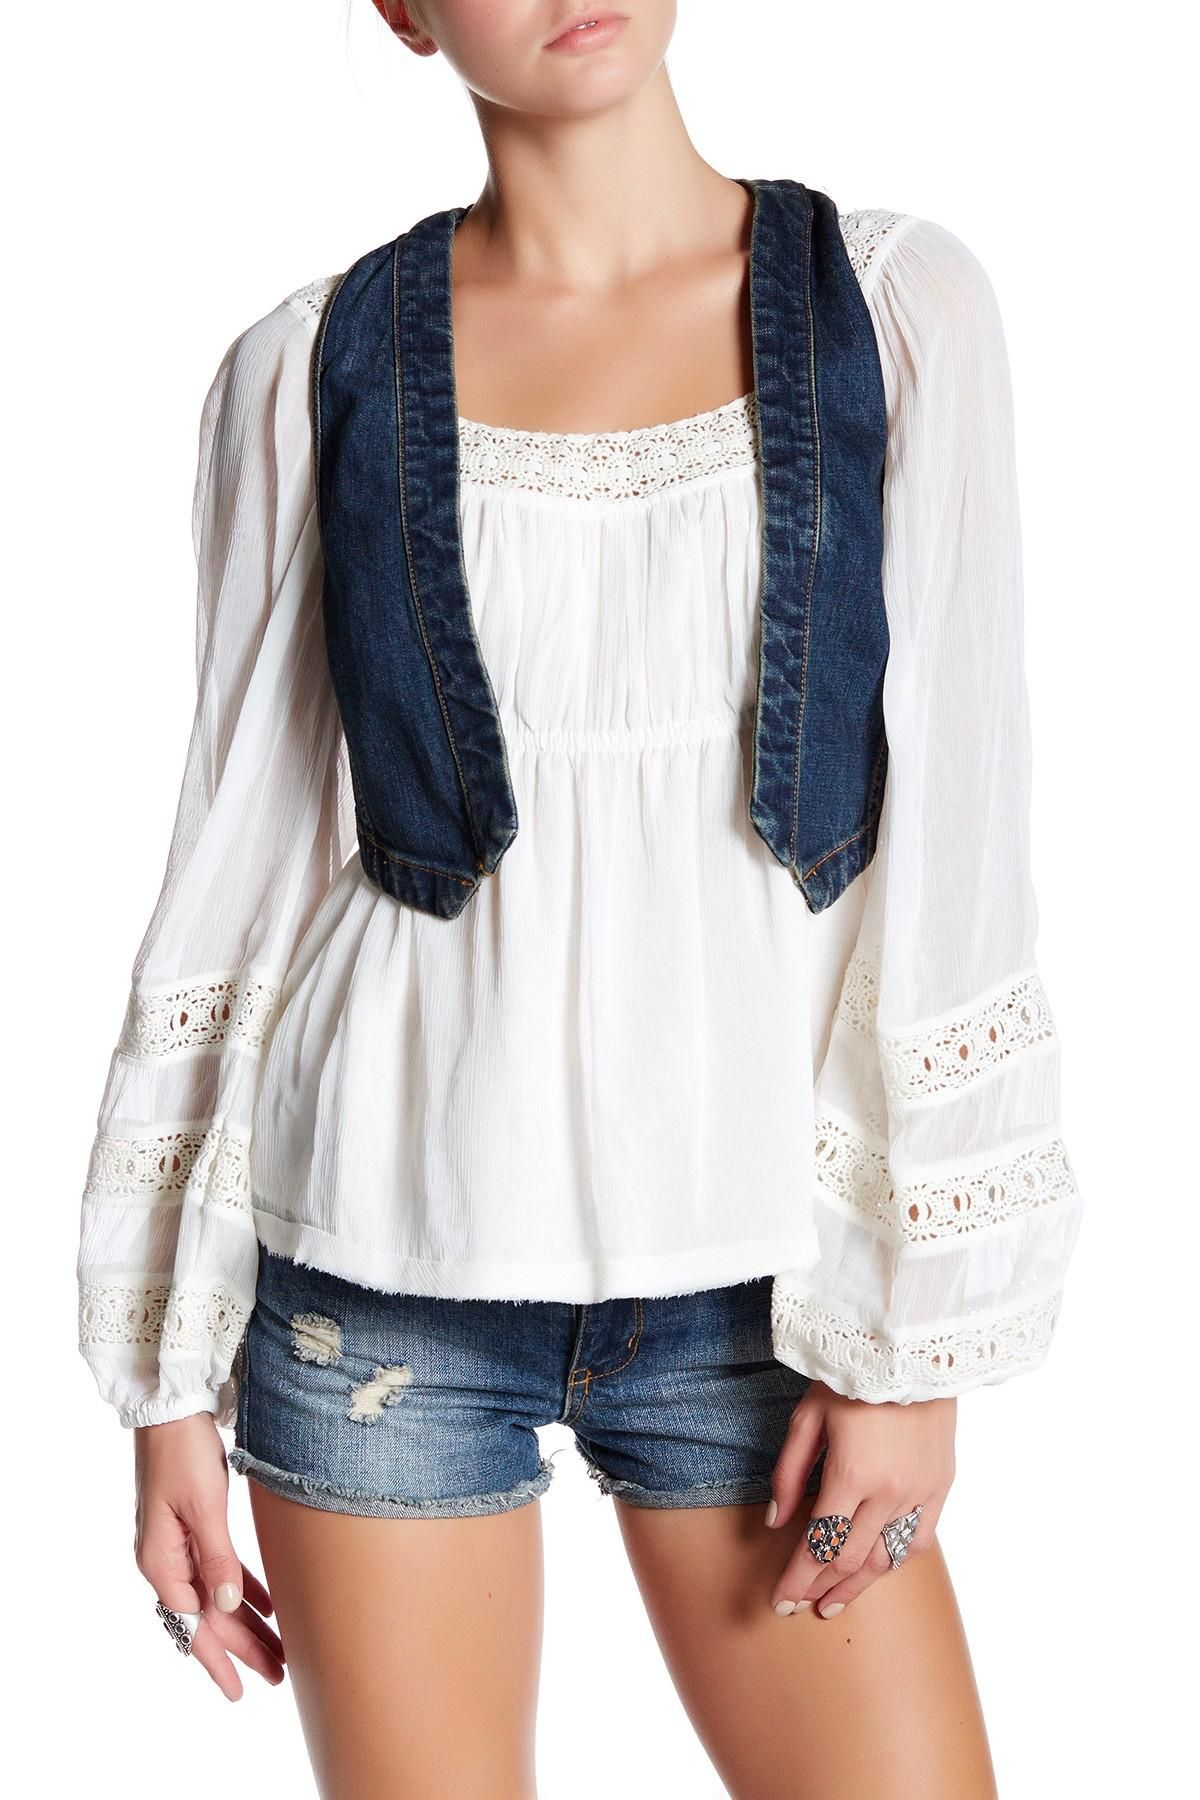 Free People Micro Woven Denim L Vest. Free shipping and guaranteed authenticity on Free People Micro Woven Denim L VestDetails  - Open front  - Sleeveless  - Seam detail...